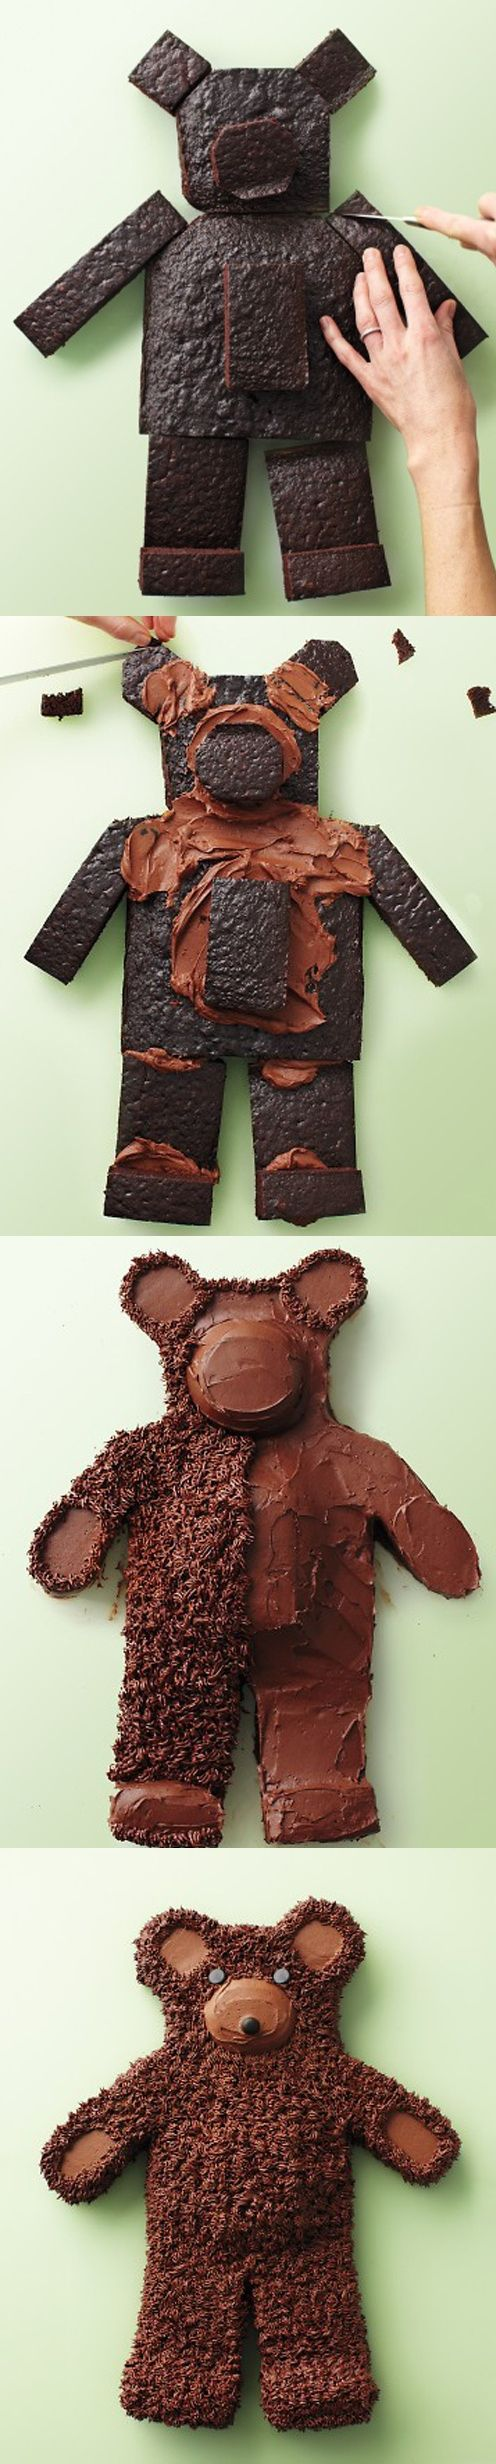 This is a great idea for a birthday cake! It's perfect for both girls and boys and it sooooos chocolate! Follow the steps and enjoy the cake along with your kids! #chocolate #cake